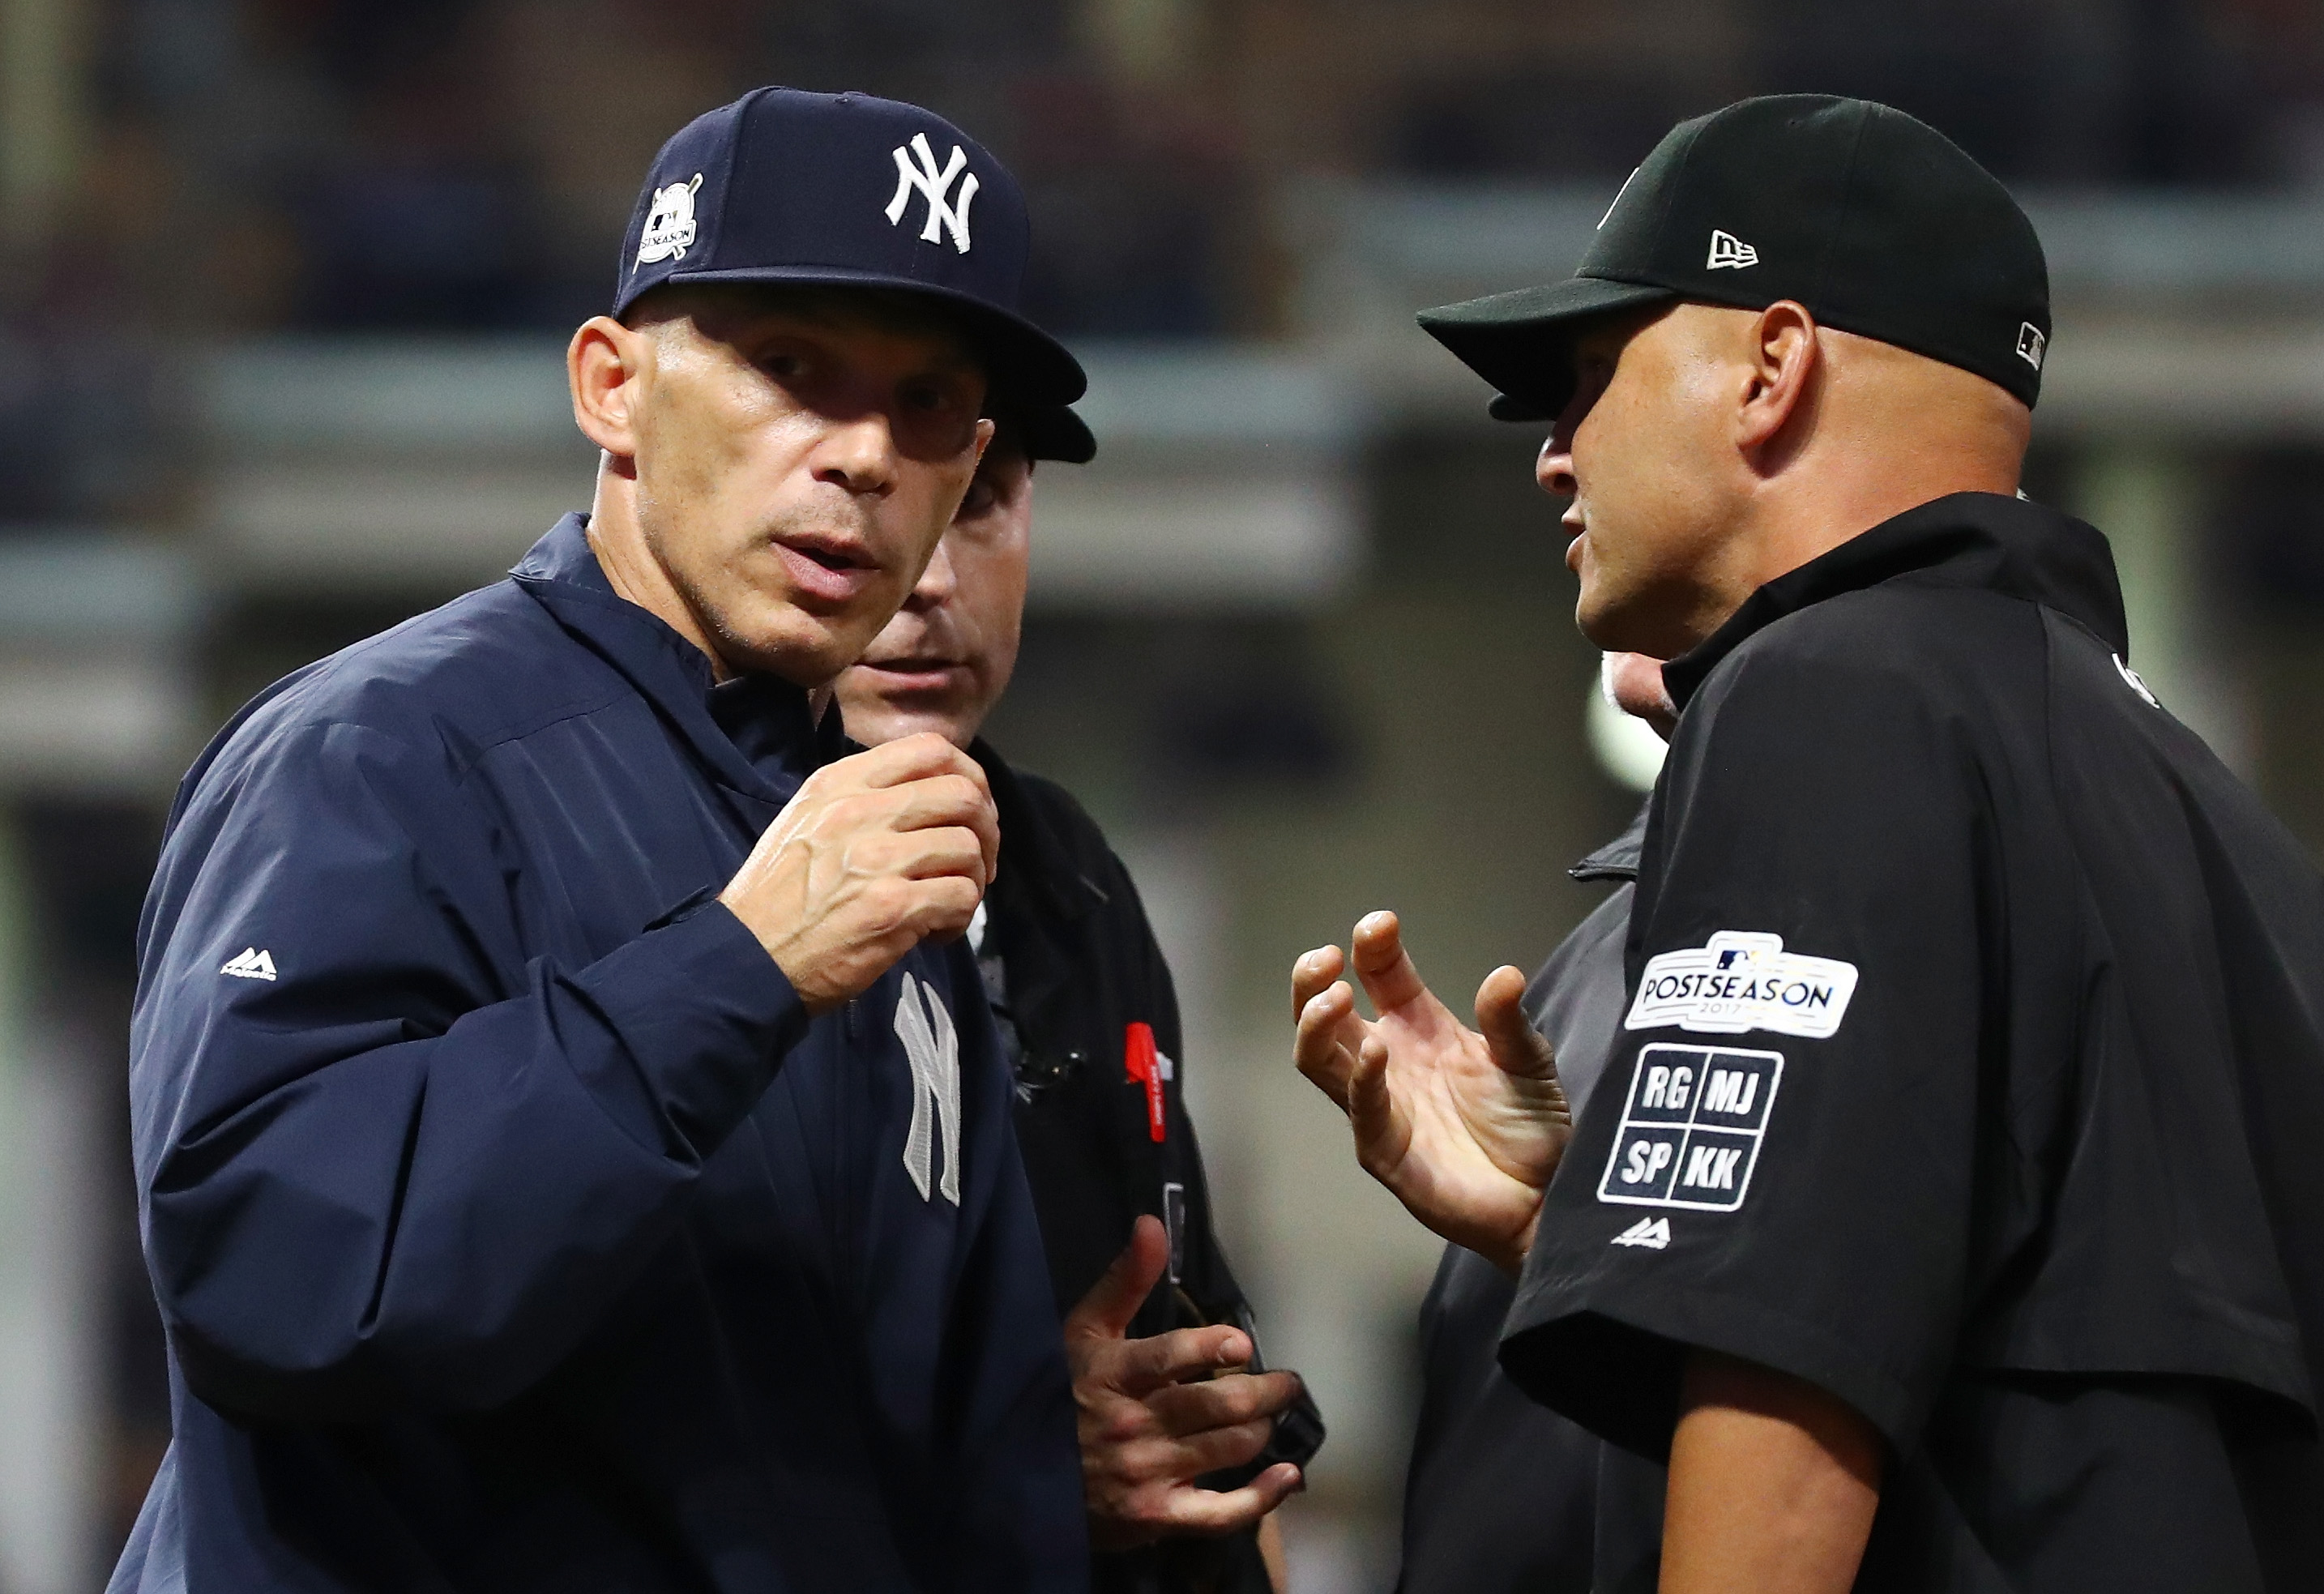 You Are Not A Catcher, Joe Girardi